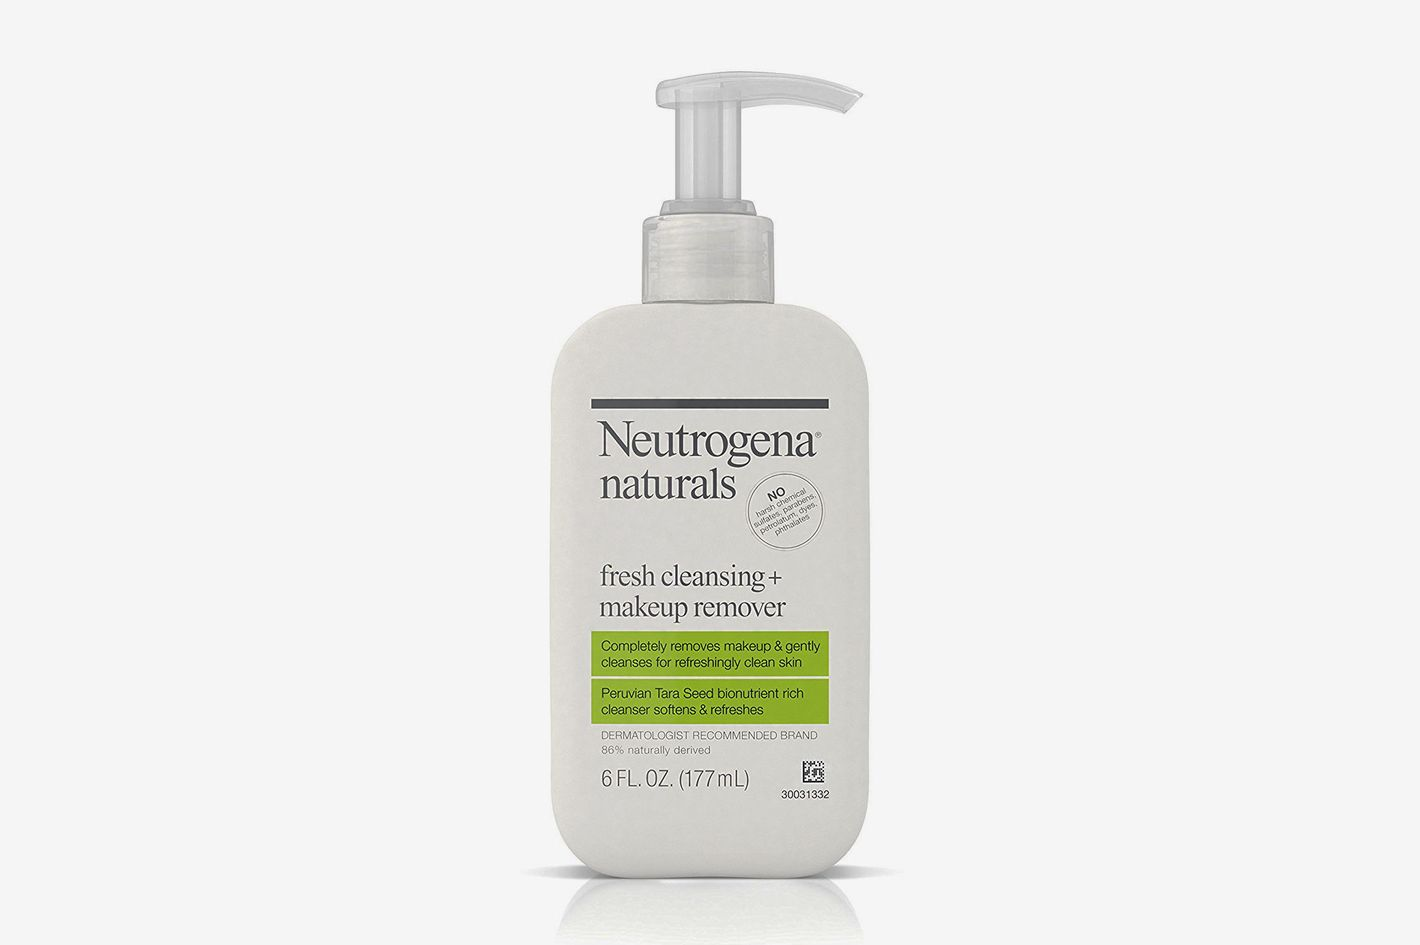 Neutrogena Naturals Fresh Cleansing Daily Face Wash + Makeup Remover